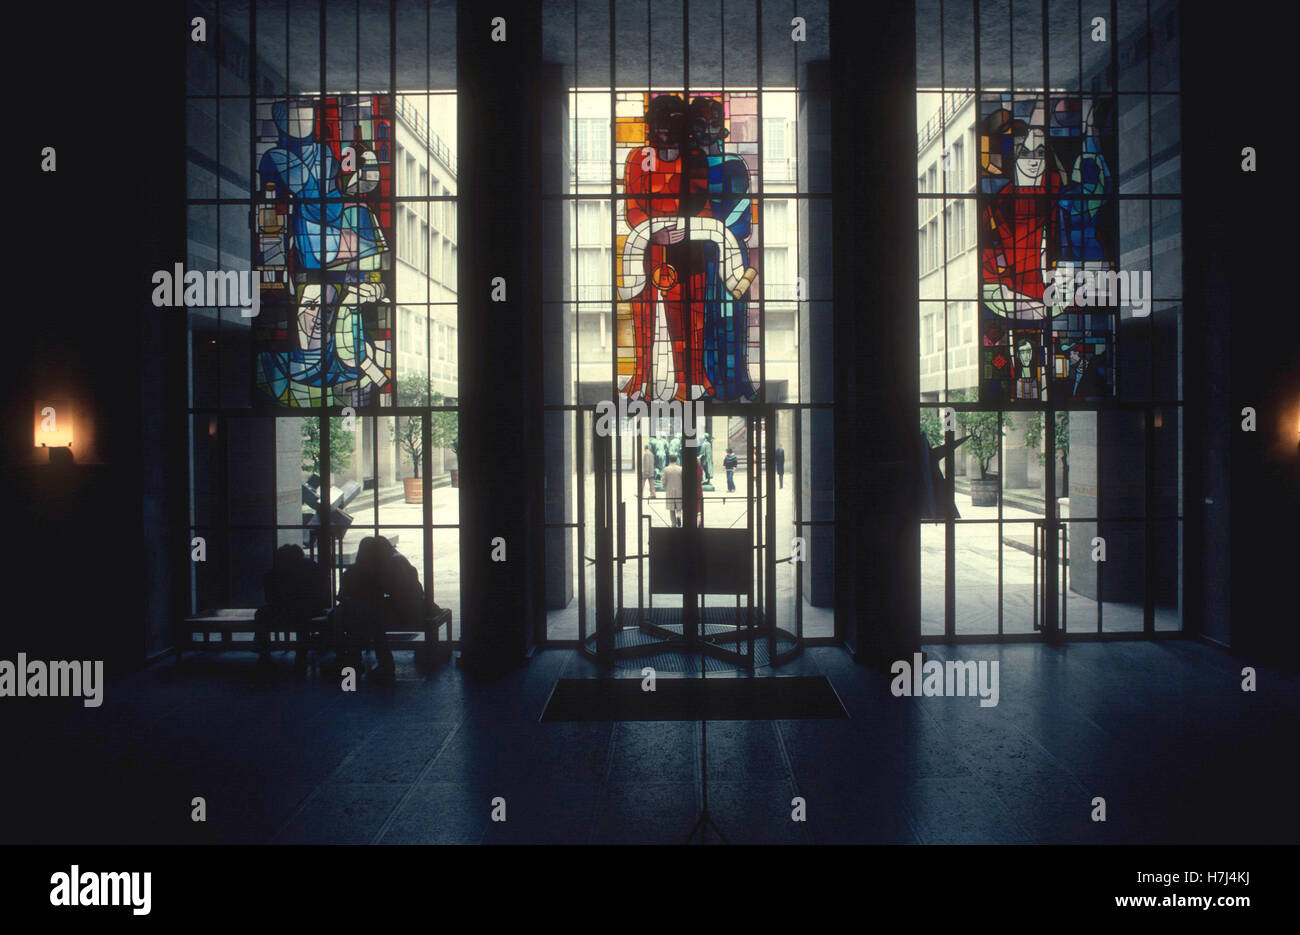 STAINED GLASS windows in the entrance to the Art Museum in Basel - Stock Image